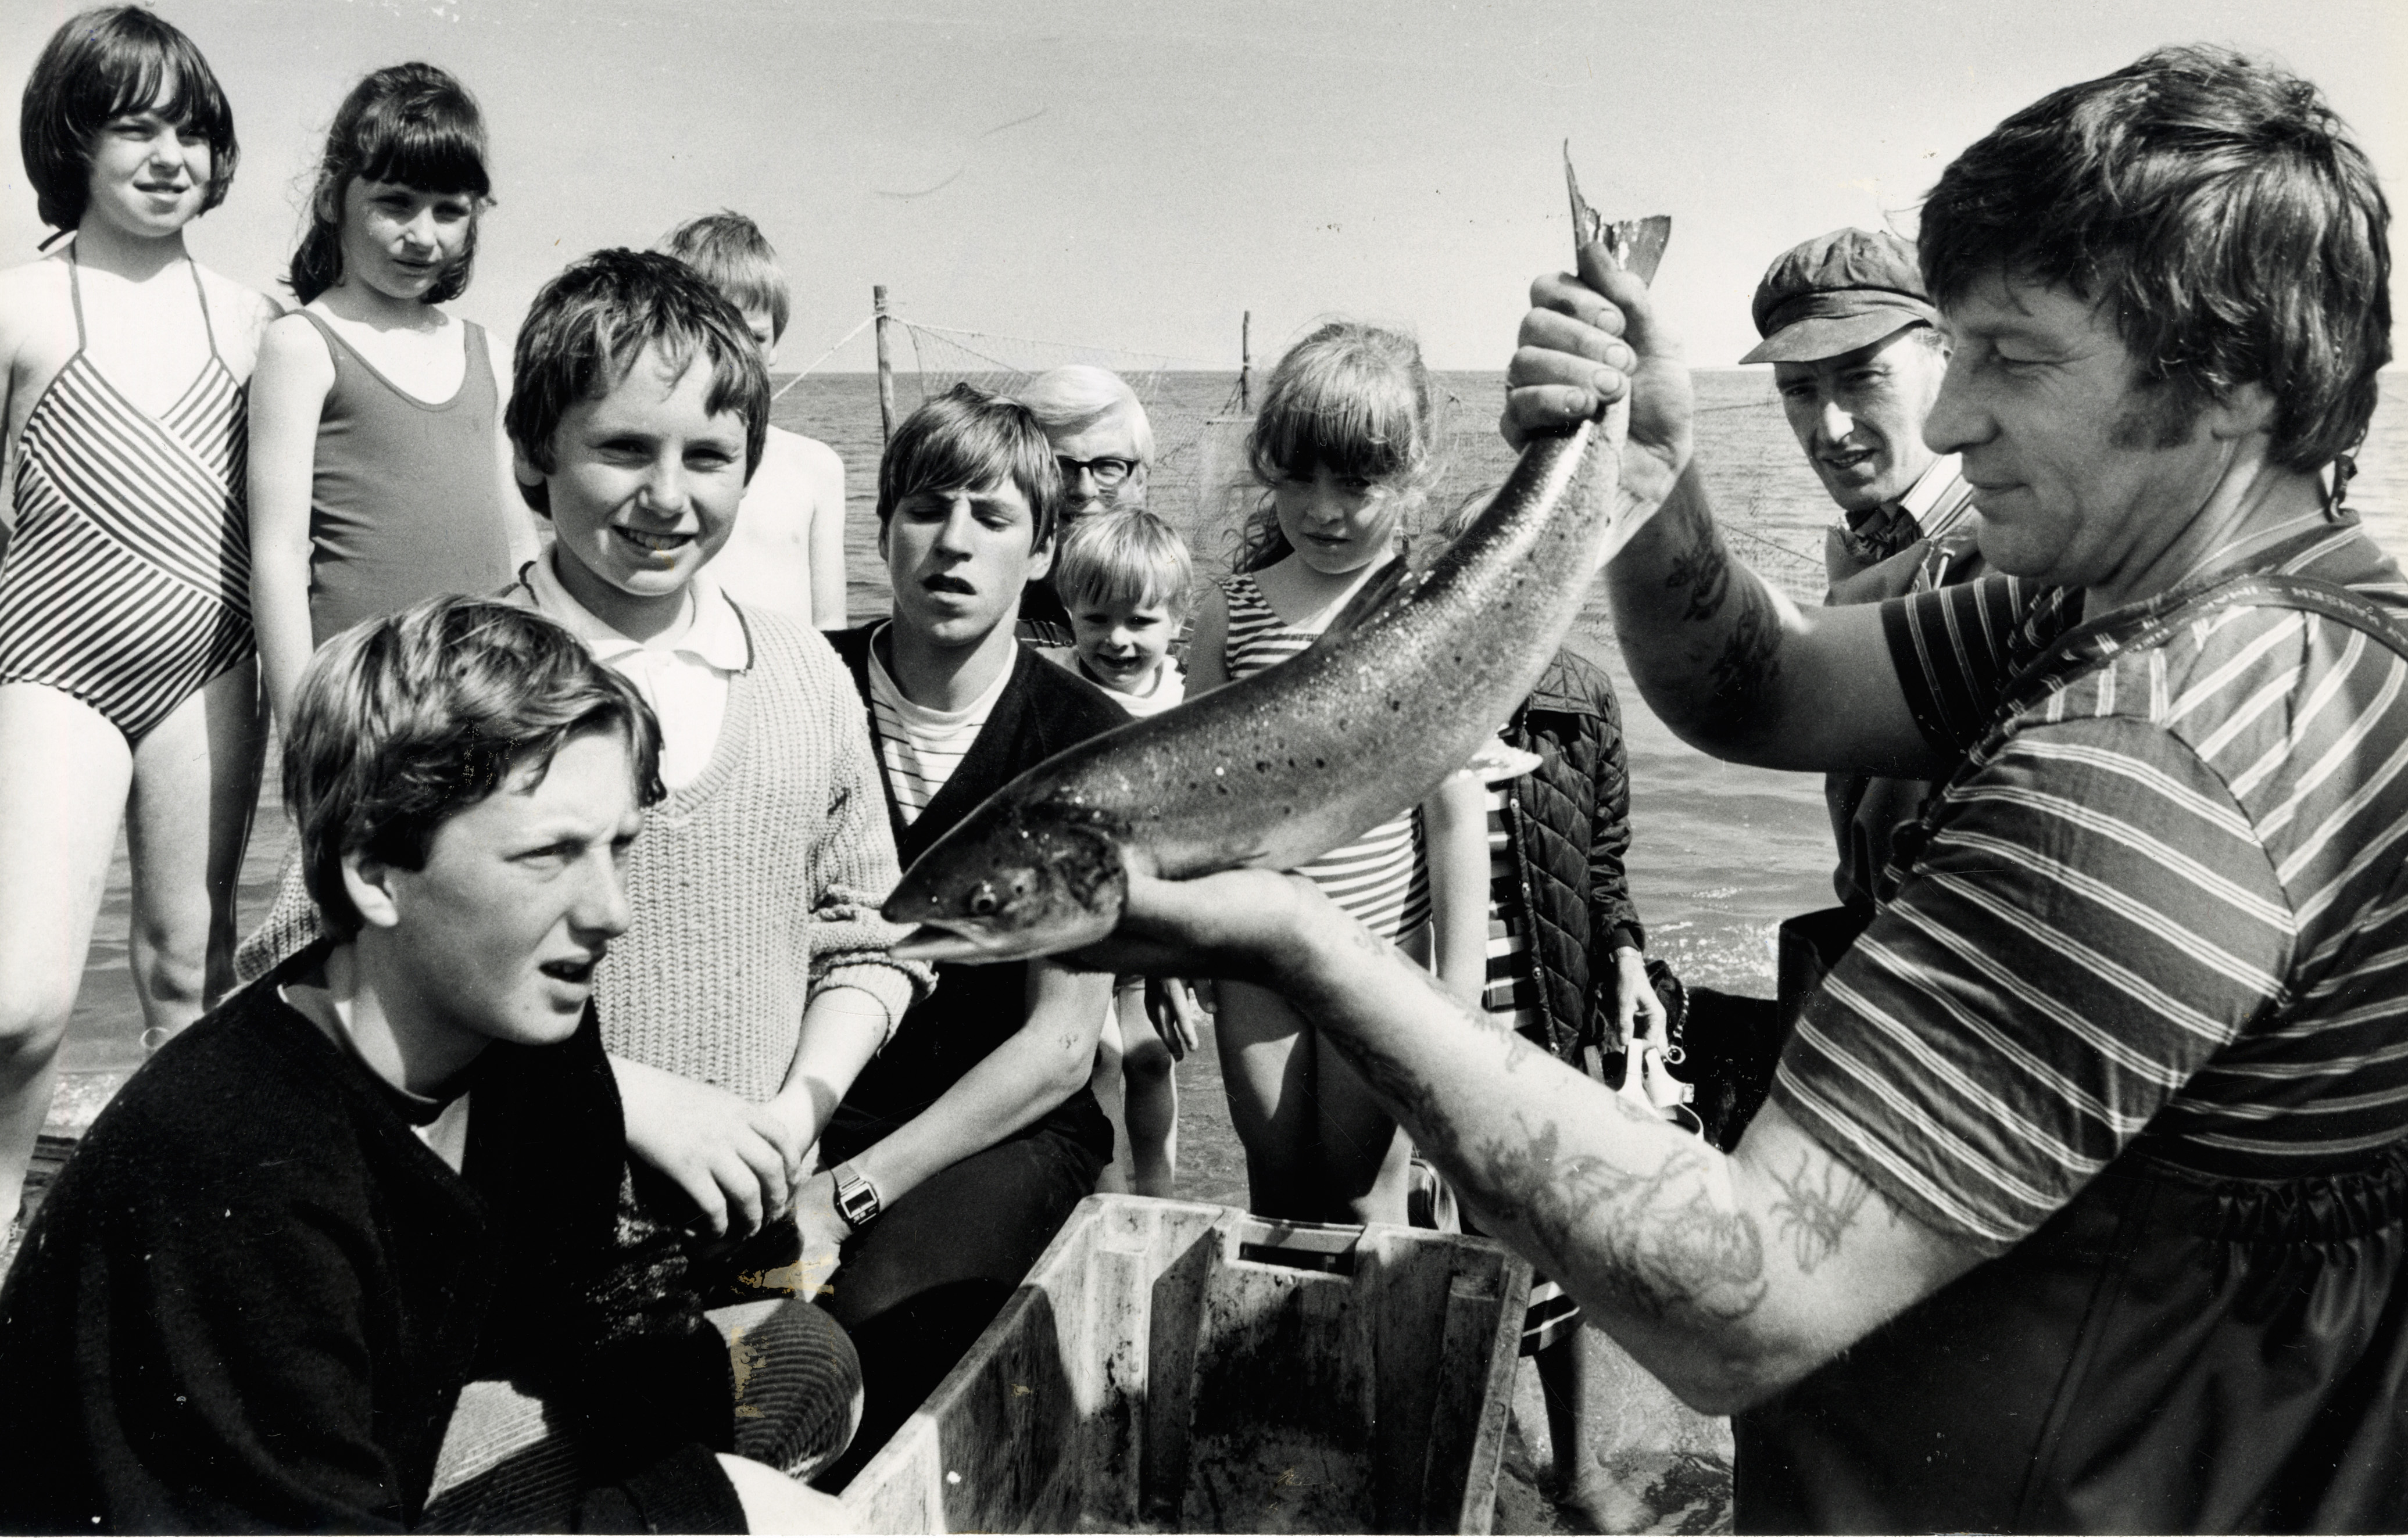 A silver salmon from the nets at Aberdeen Beach holds the attention of youngsters and adults alike as fishermen Tommy Thomson and Bob Nicholson show the fish to the holiday makers